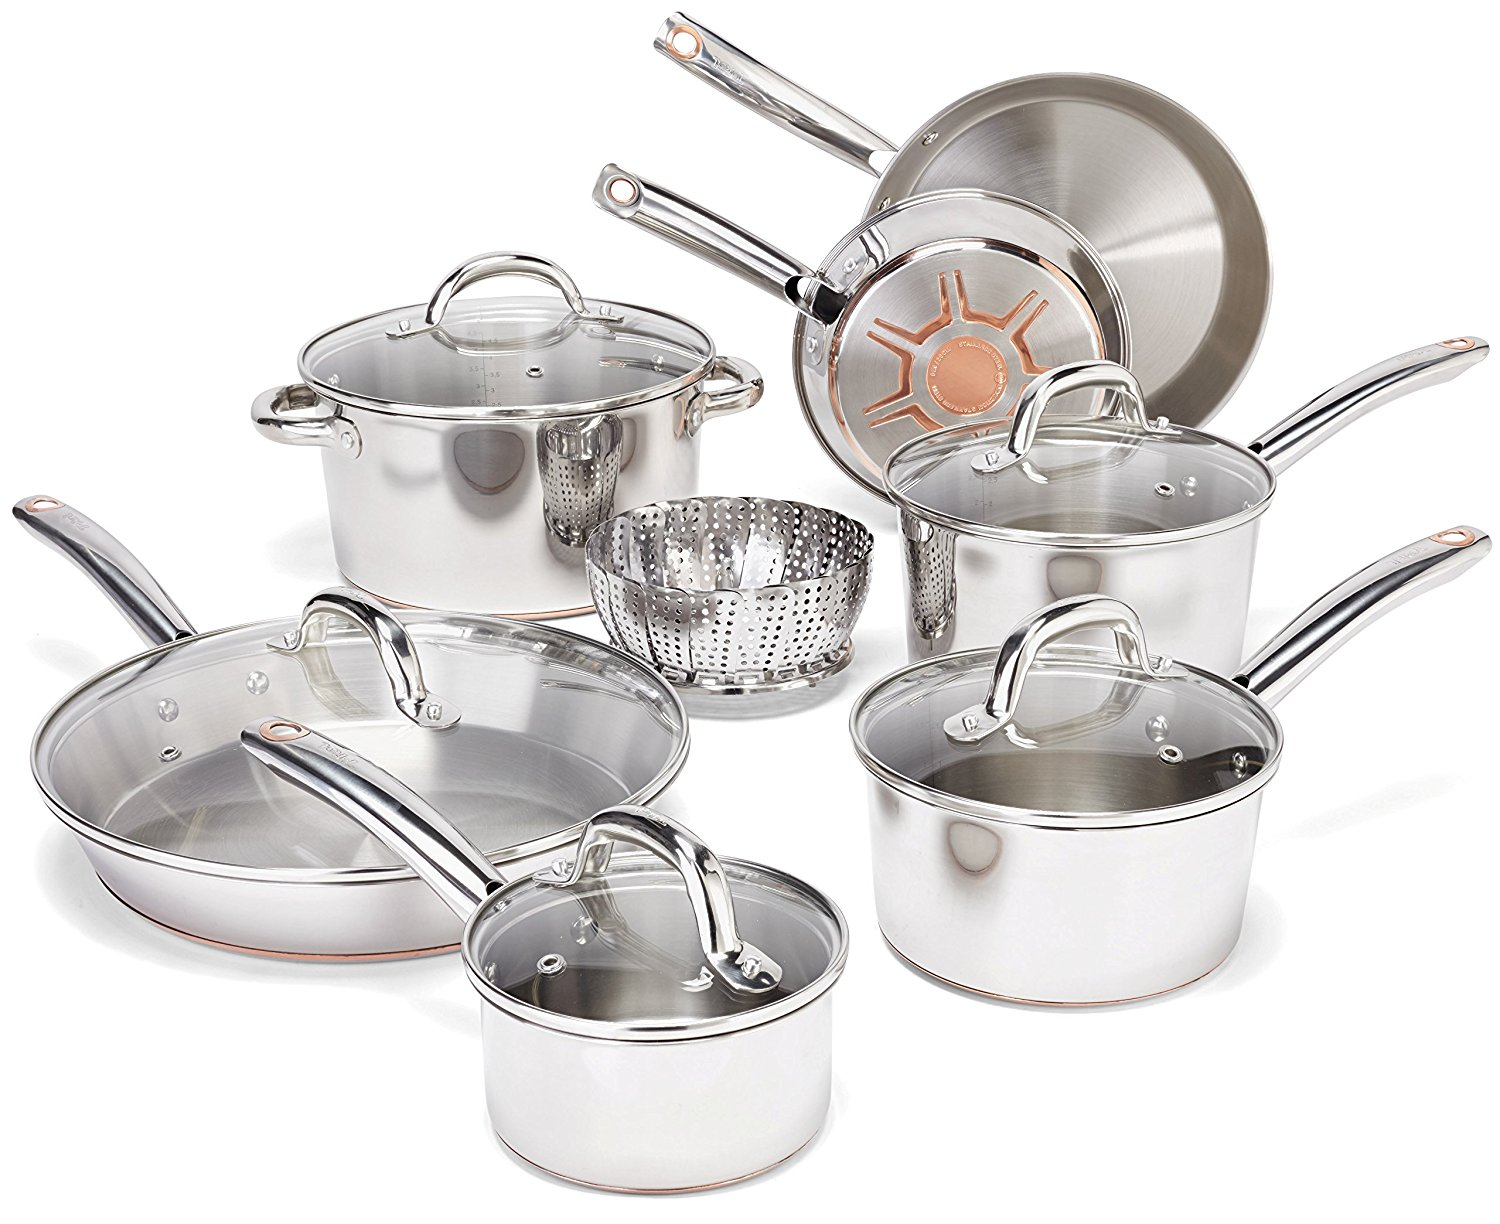 items for your kitchen pots and pans